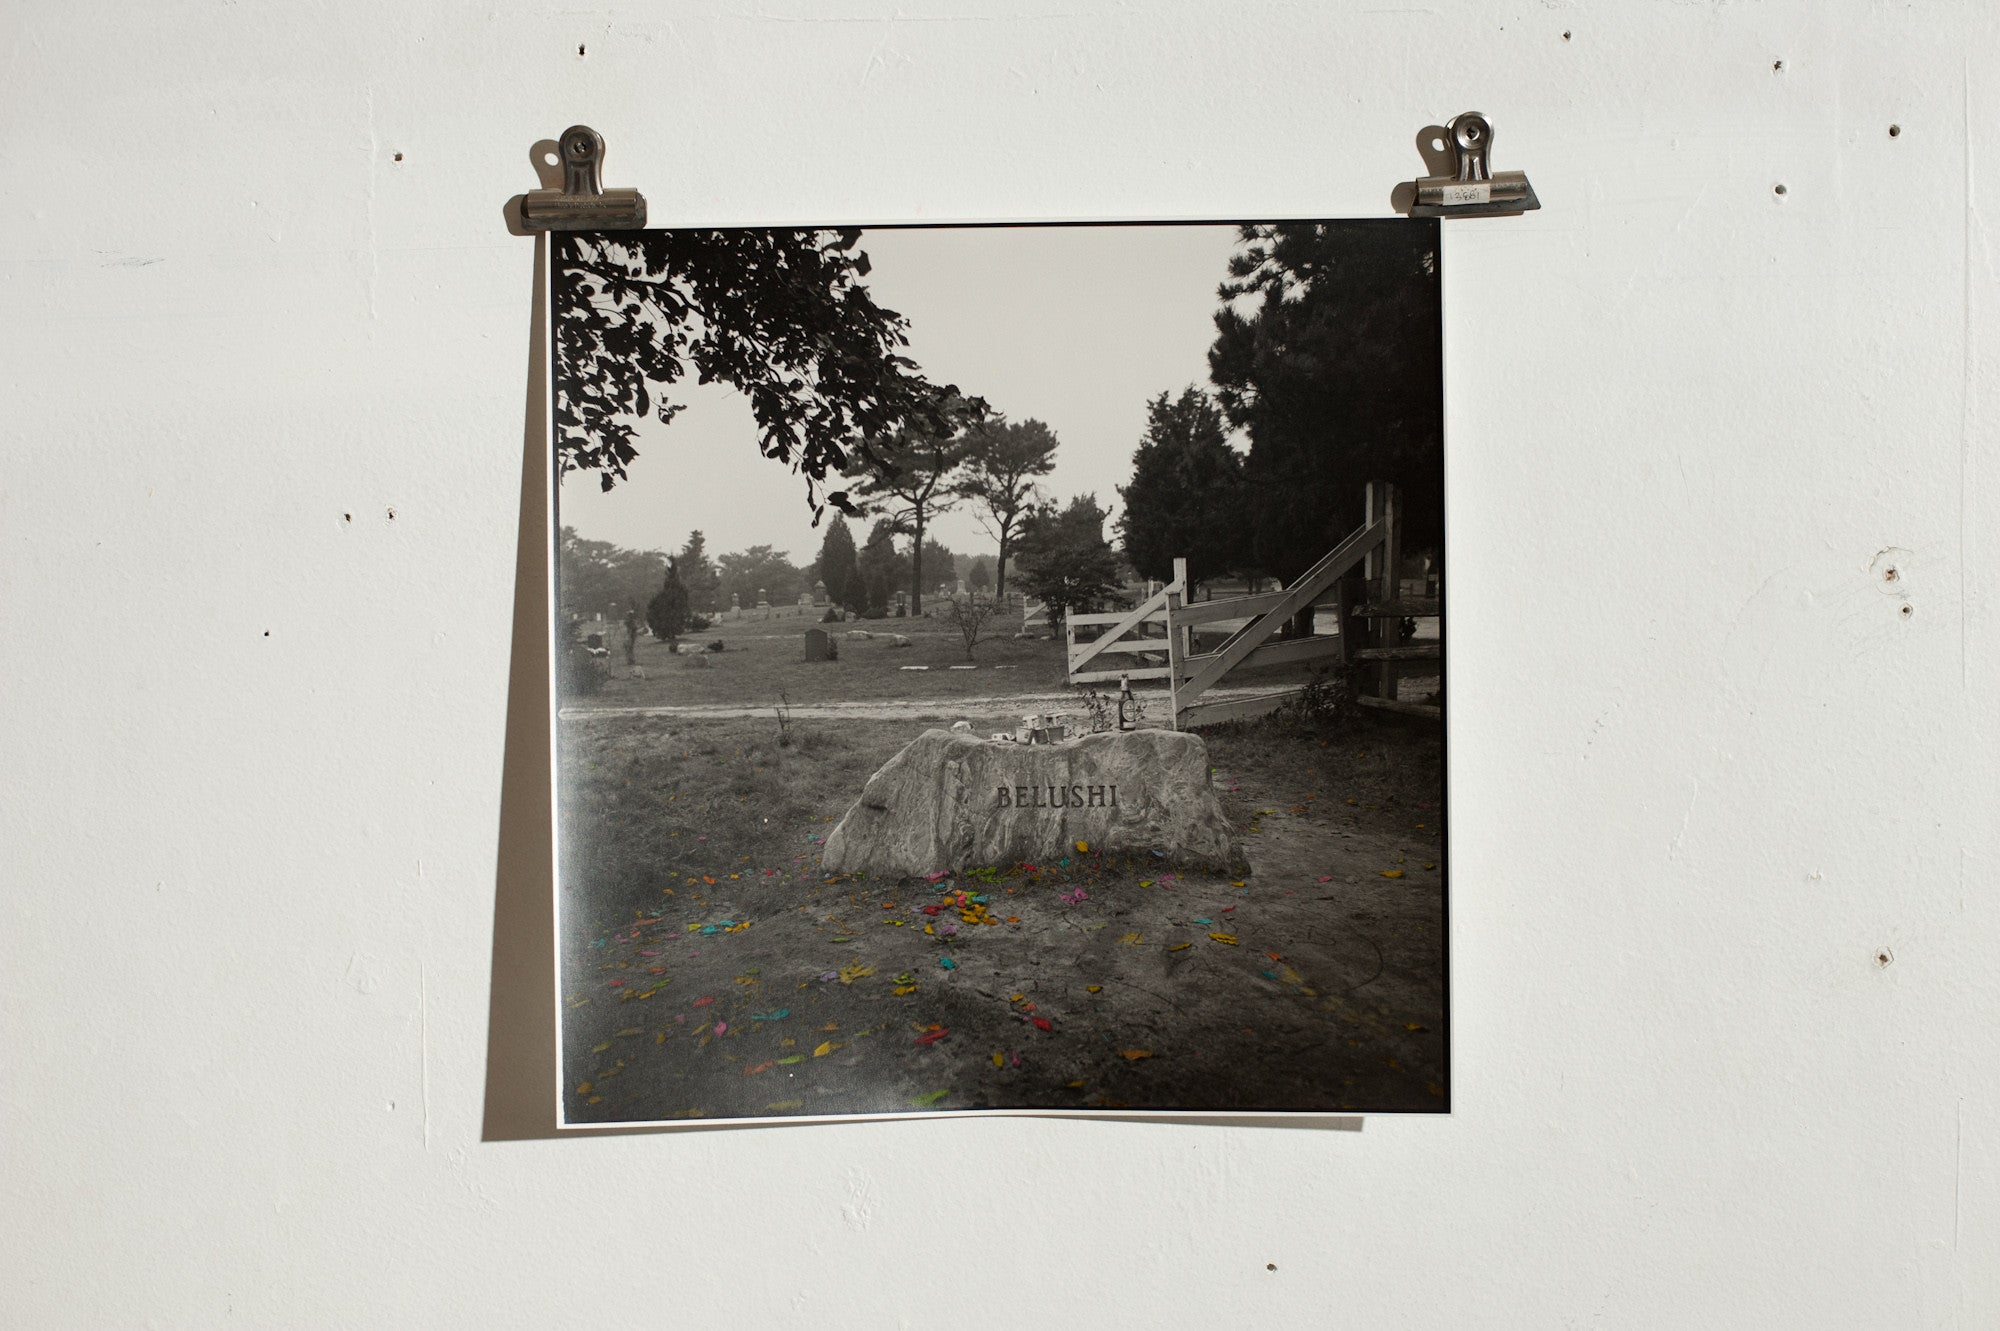 Ben Pearson - John Belushi's Grave - Hand Tinted Black and White